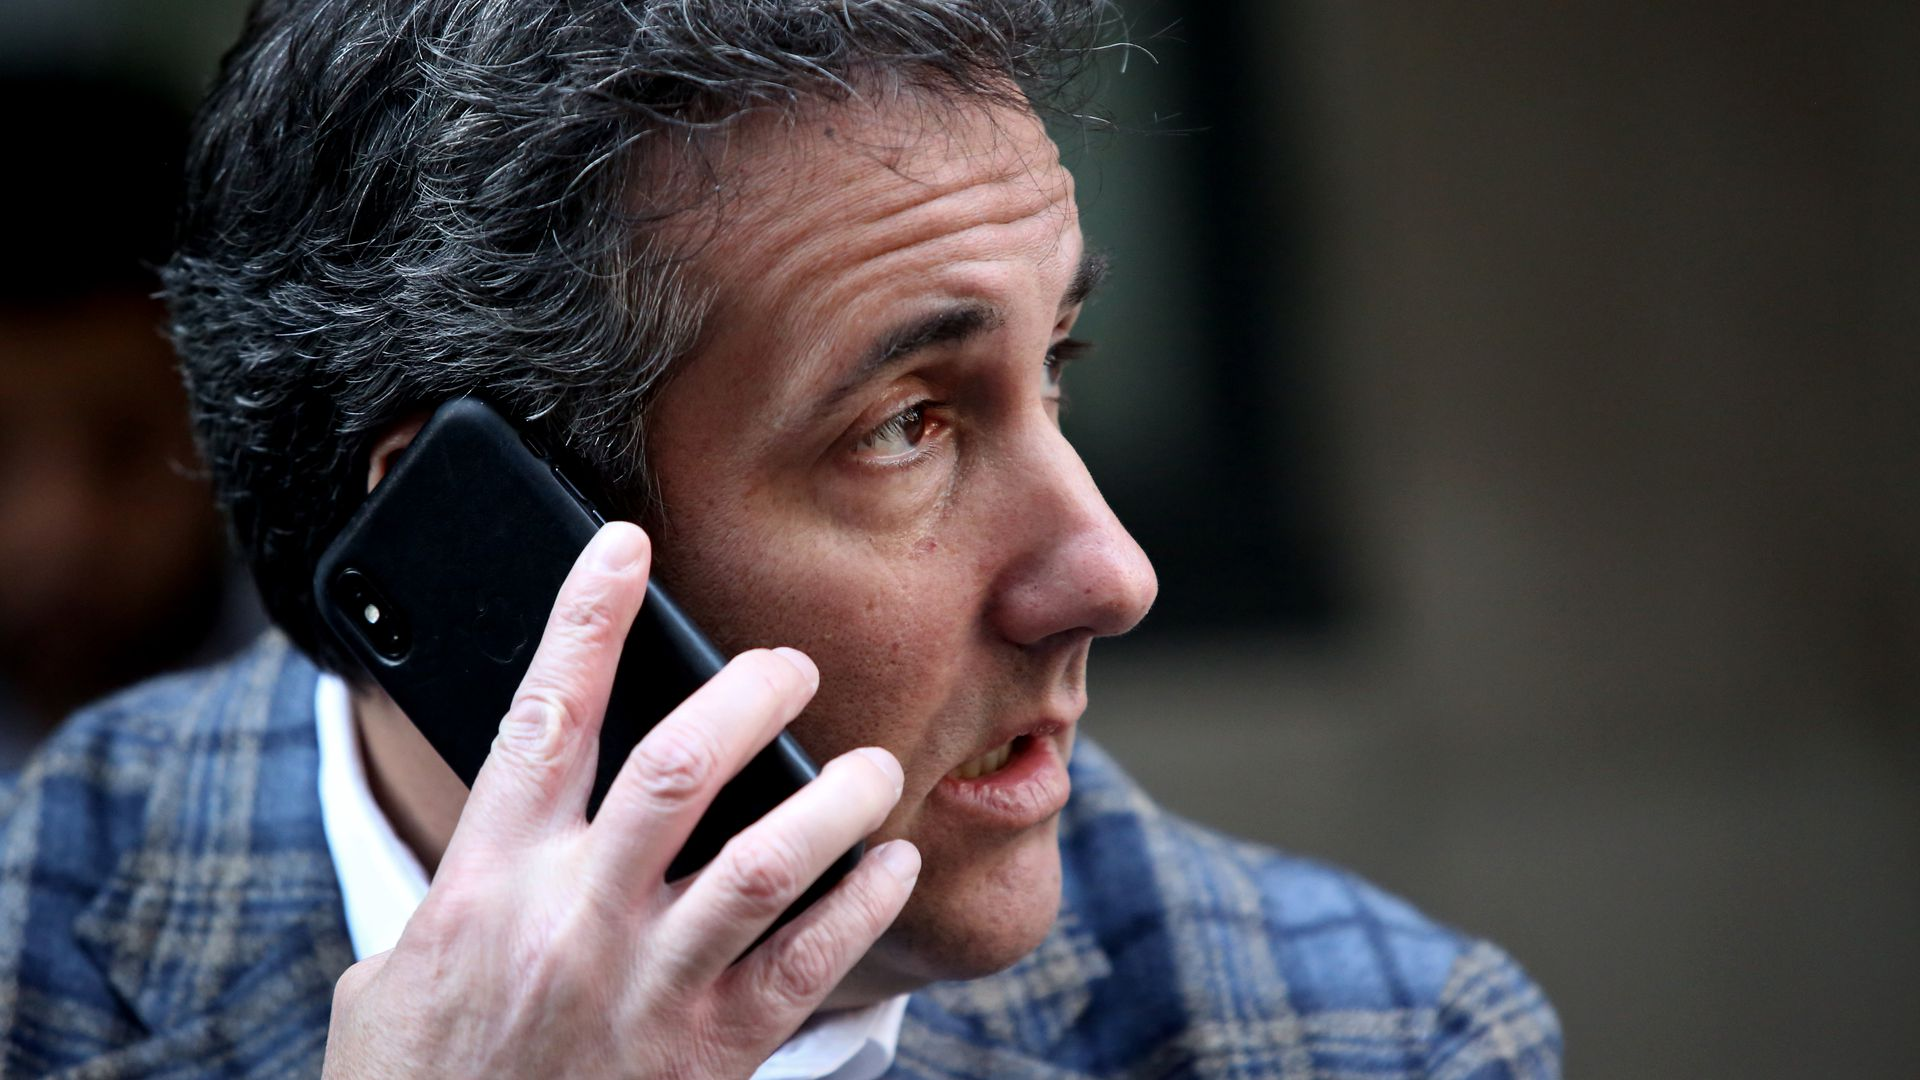 Michael Cohen holding a phone to his ear.